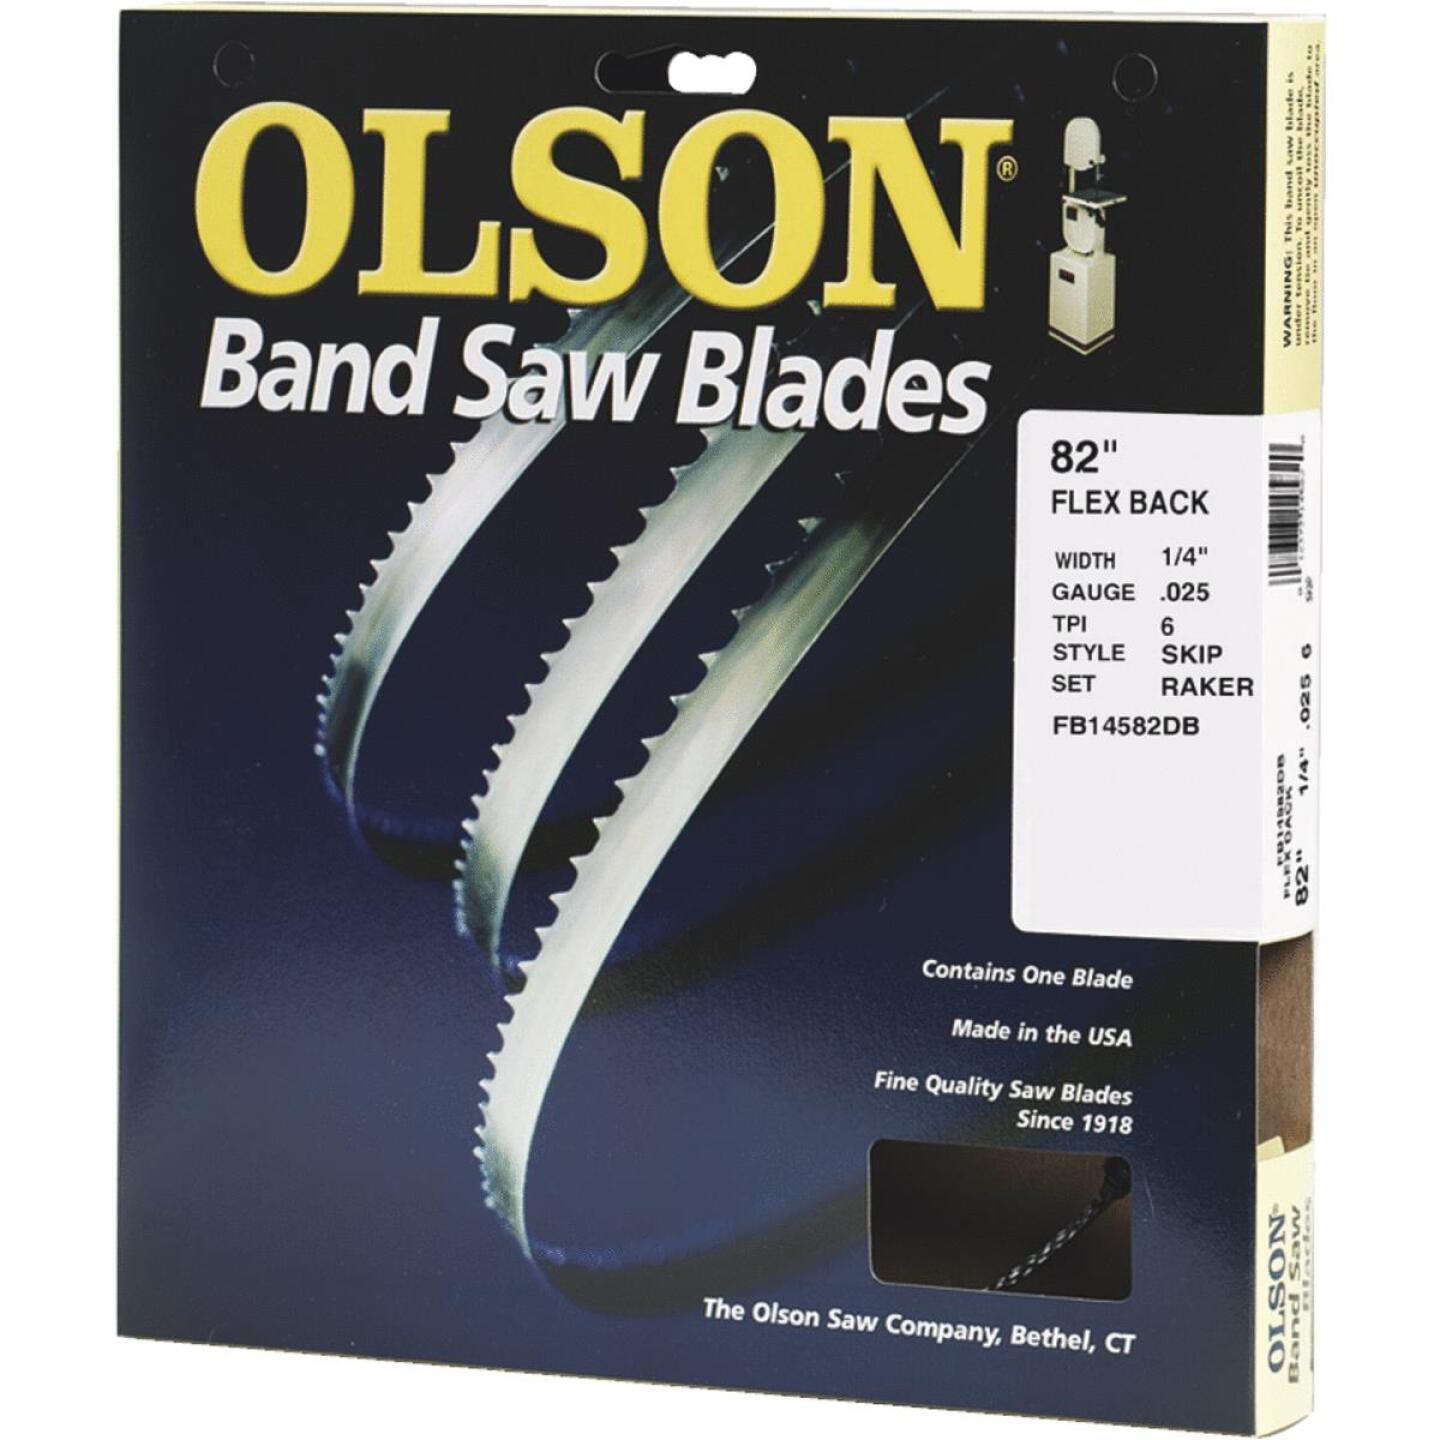 Olson 82 In. x 1/4 In. 6 TPI Skip Flex Back Band Saw Blade Image 1